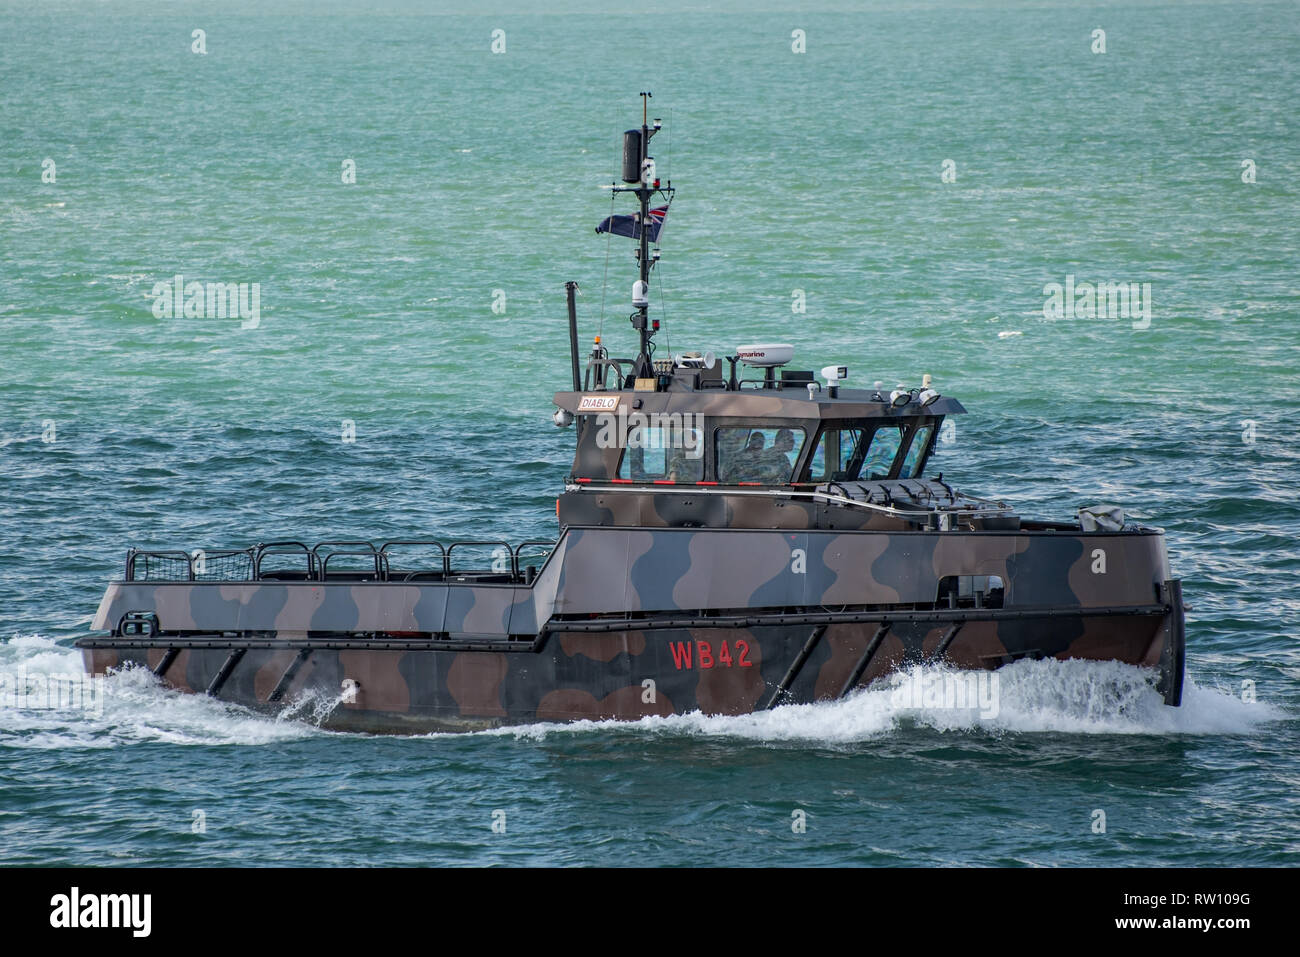 The British Army workboat 'Diablo' (WB42) approaching Portsmouth, UK on the 24th June 2016. - Stock Image